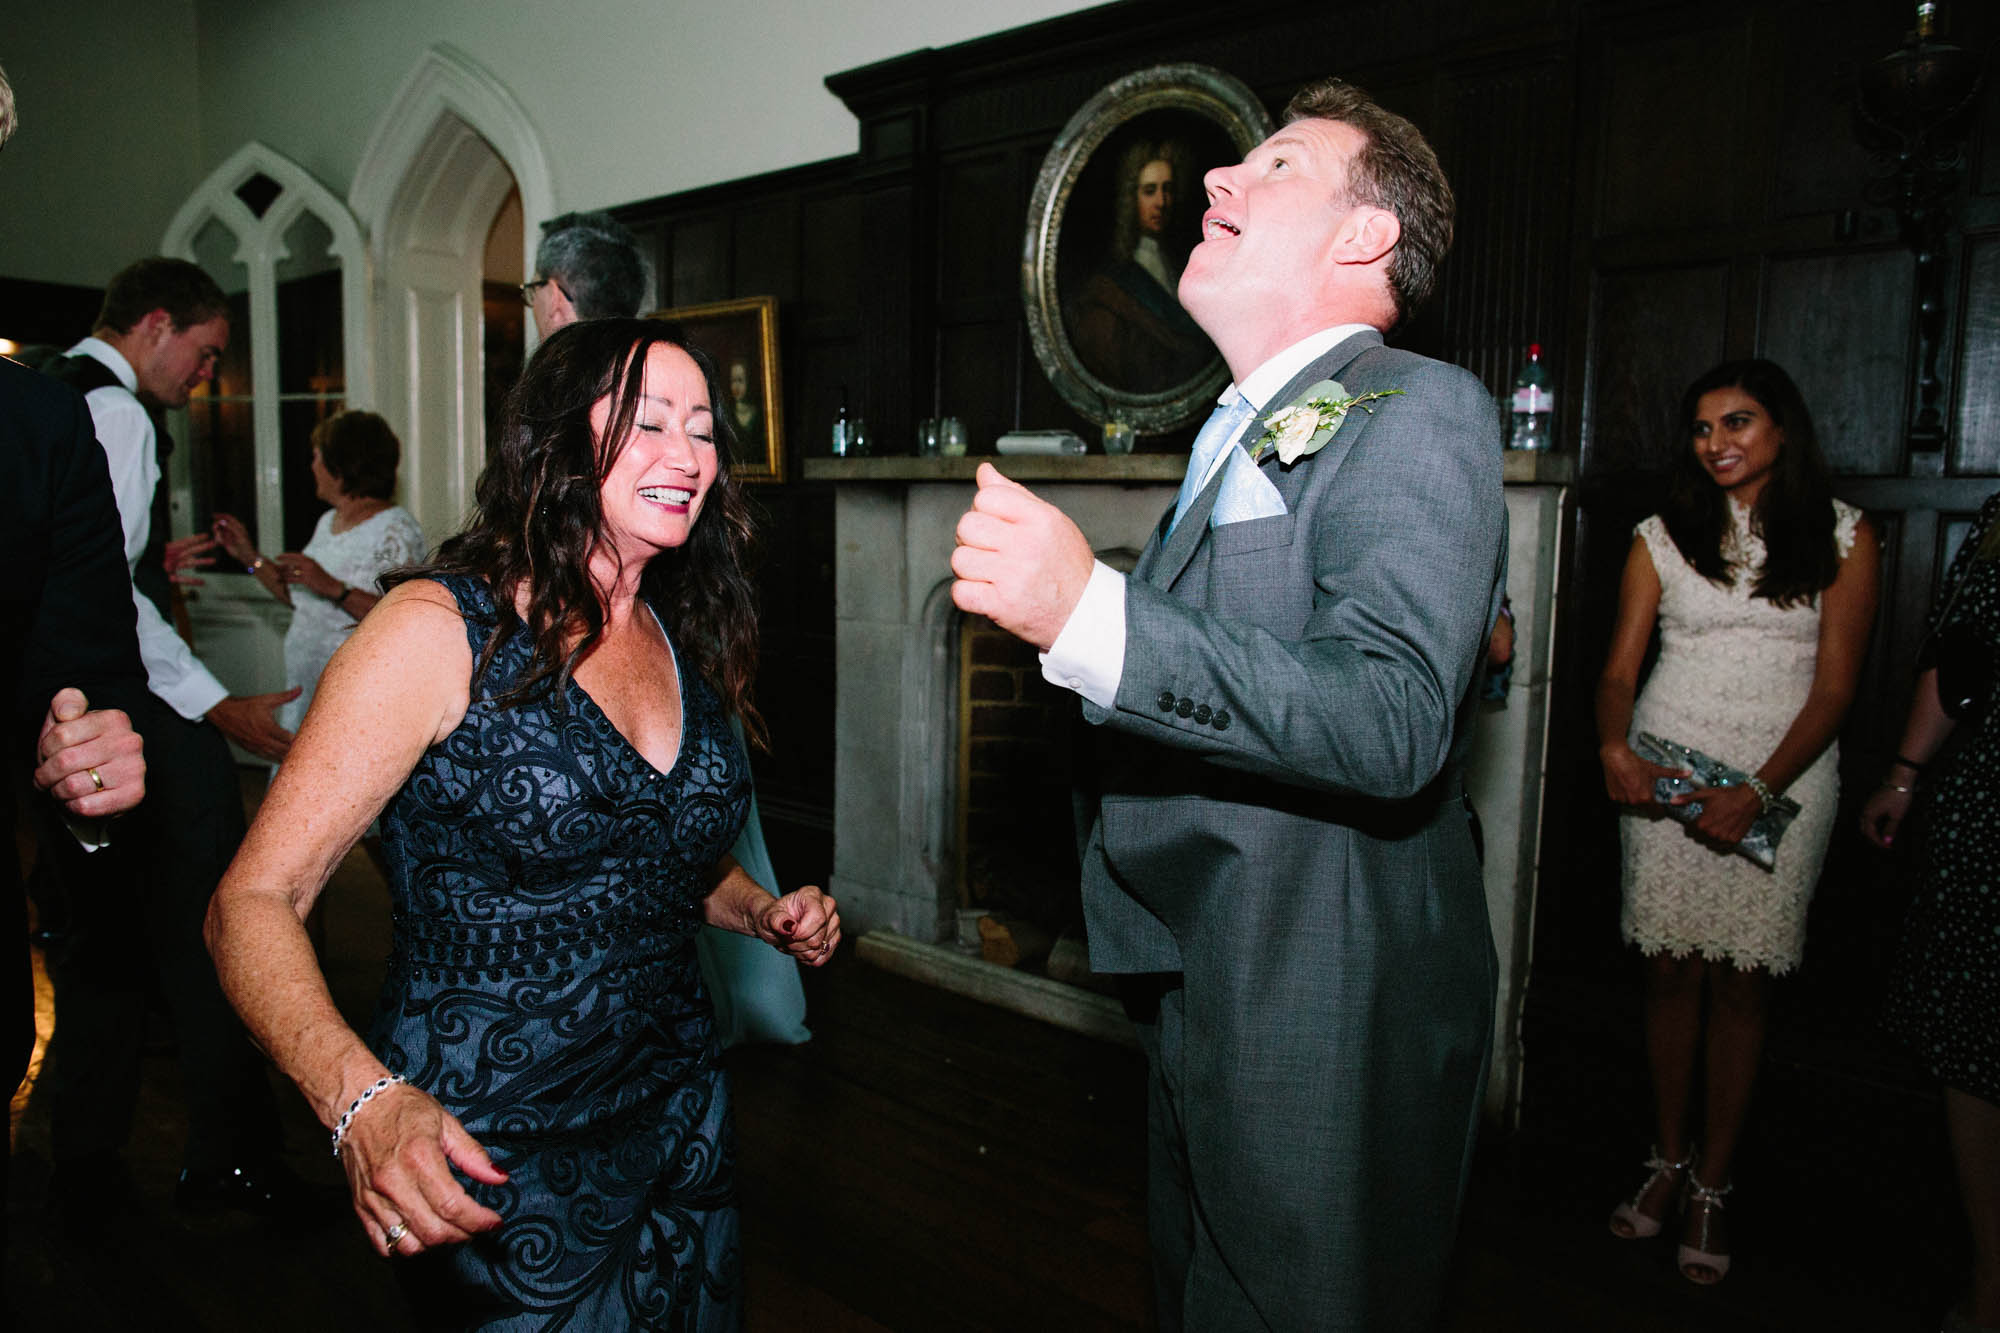 Bride's mother and father dancing in the evening in the ballroom at Chiddingstone Castle